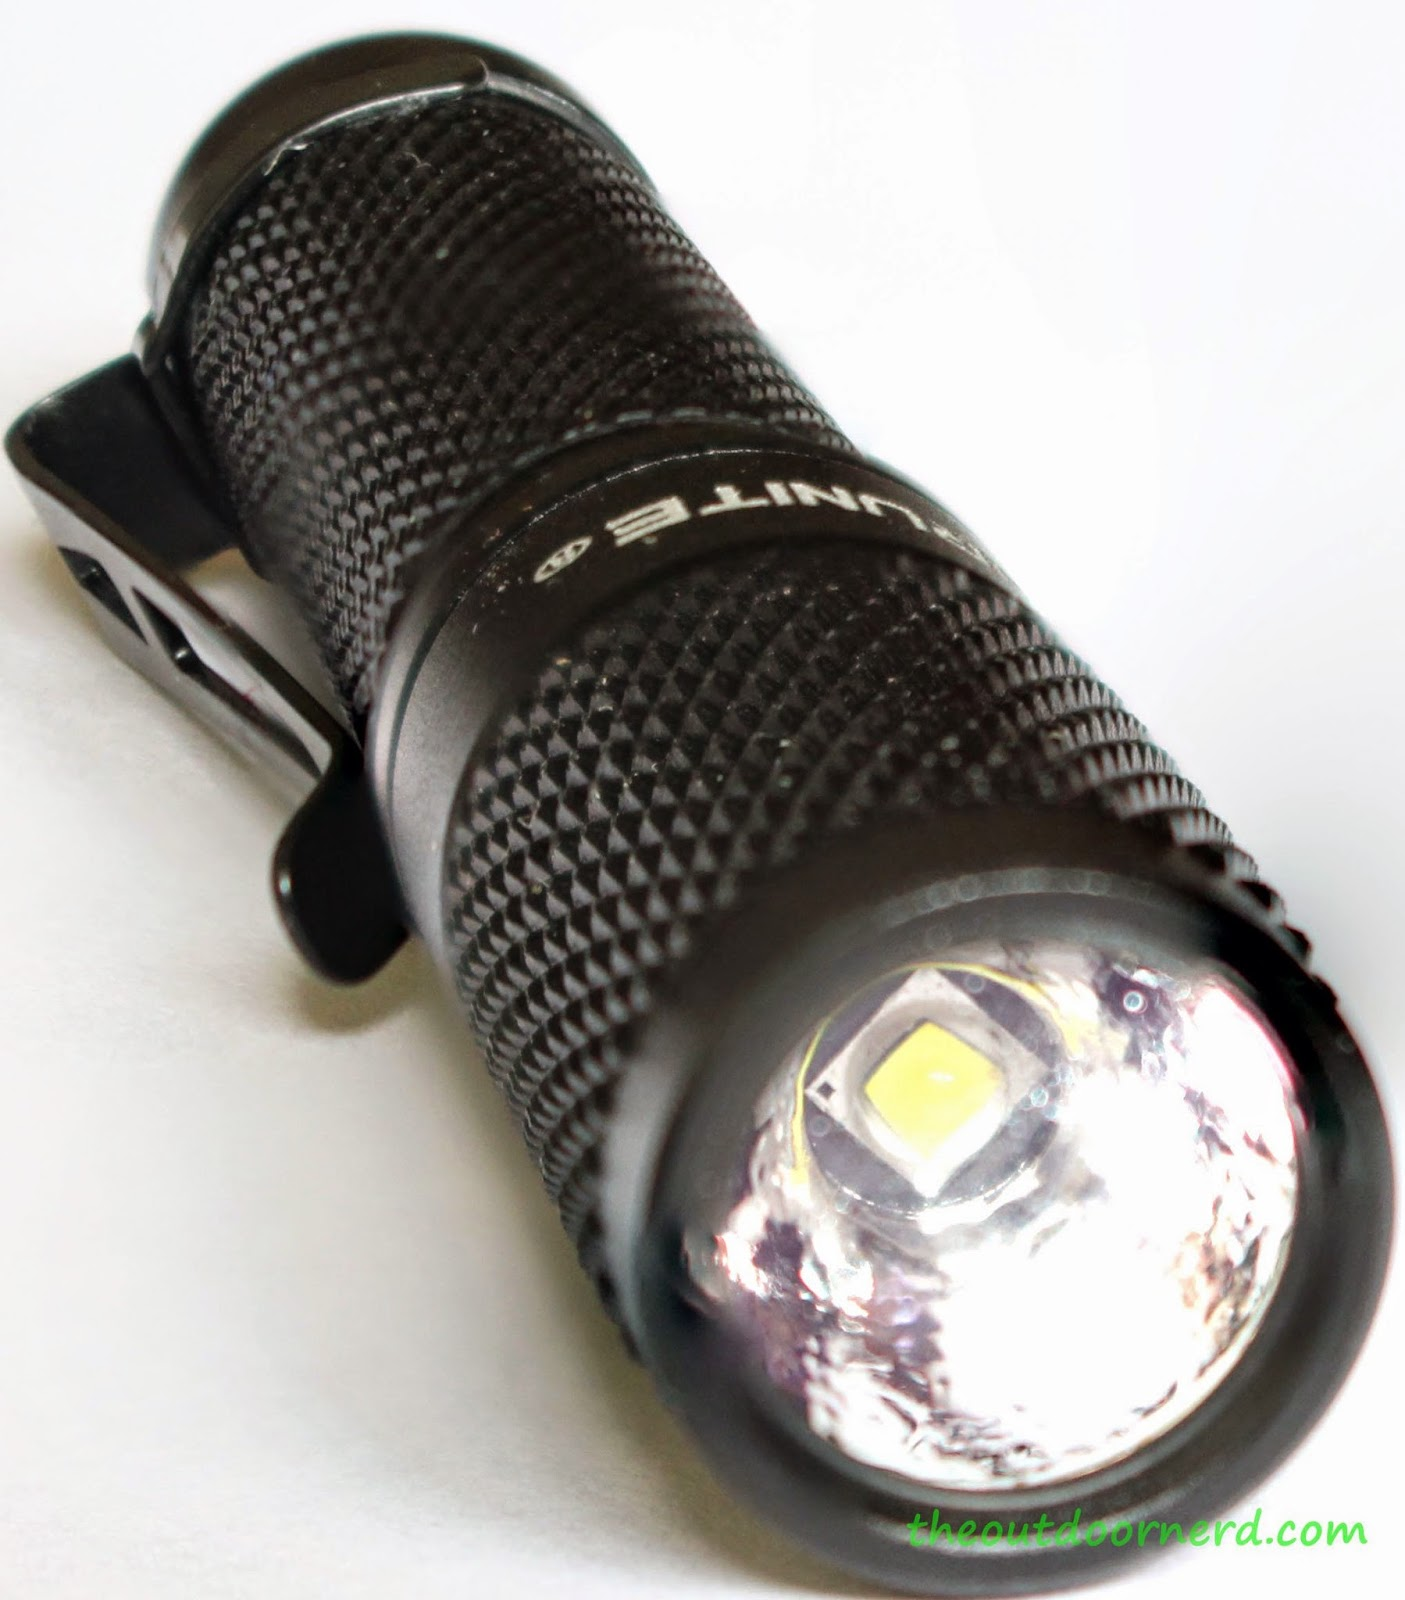 Thrunite Ti3 1xAAA EDC Flashlight: Product View 5